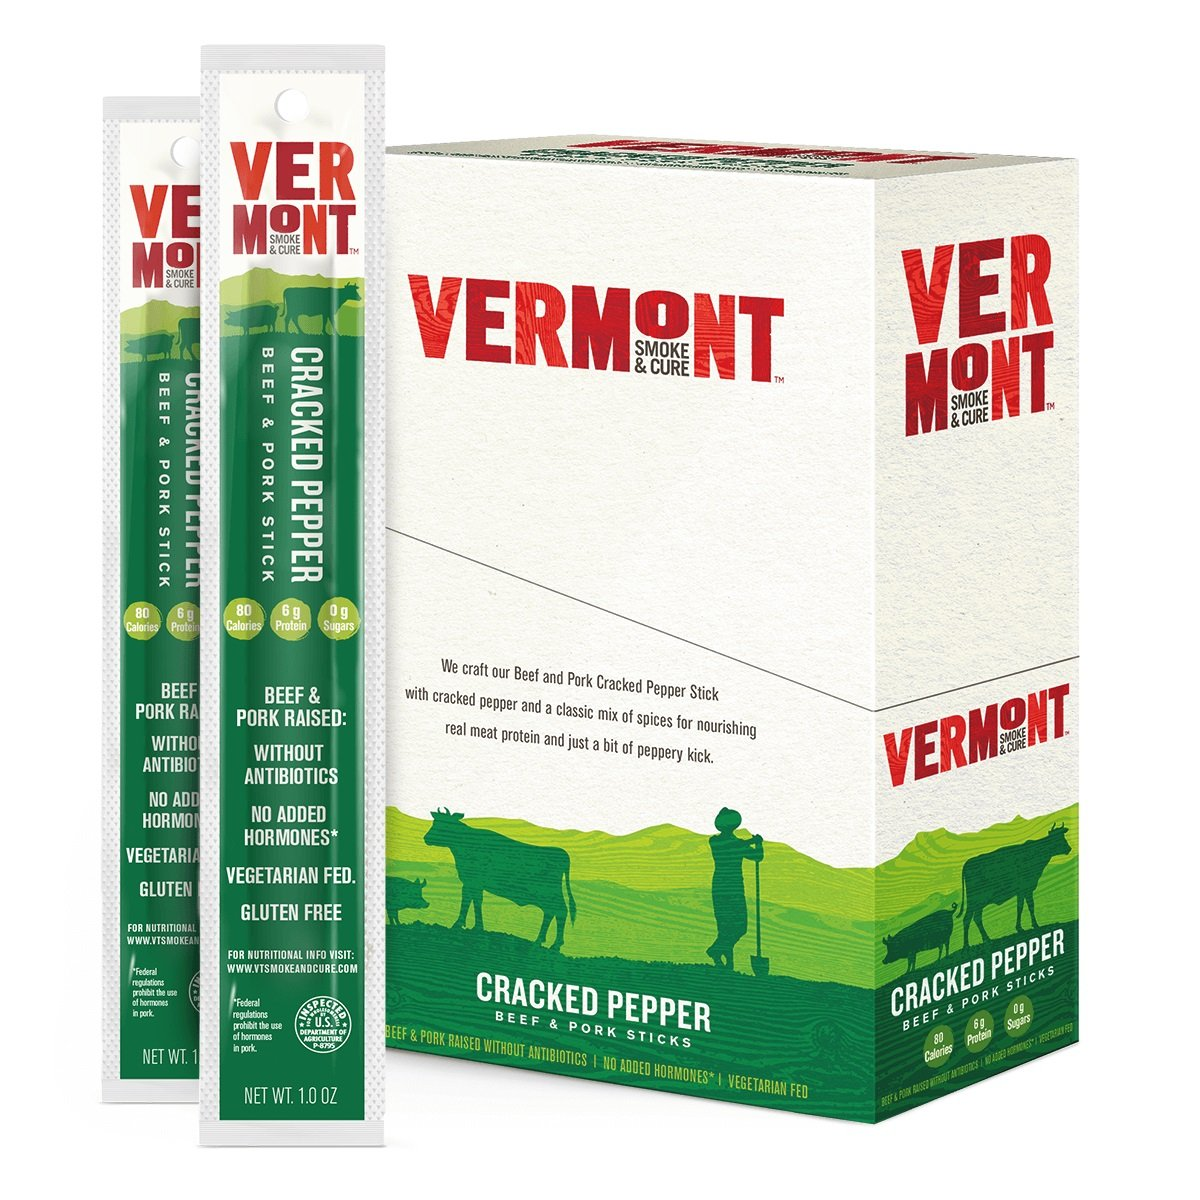 Vermont Smoke & Cure Jerky Sticks - Antibiotic Free Beef & Pork Sticks - Gluten Free - Great Keto Snack -High in Protein & Low Sugar - Original Flavor -1oz Jerky Stick - 24 Count